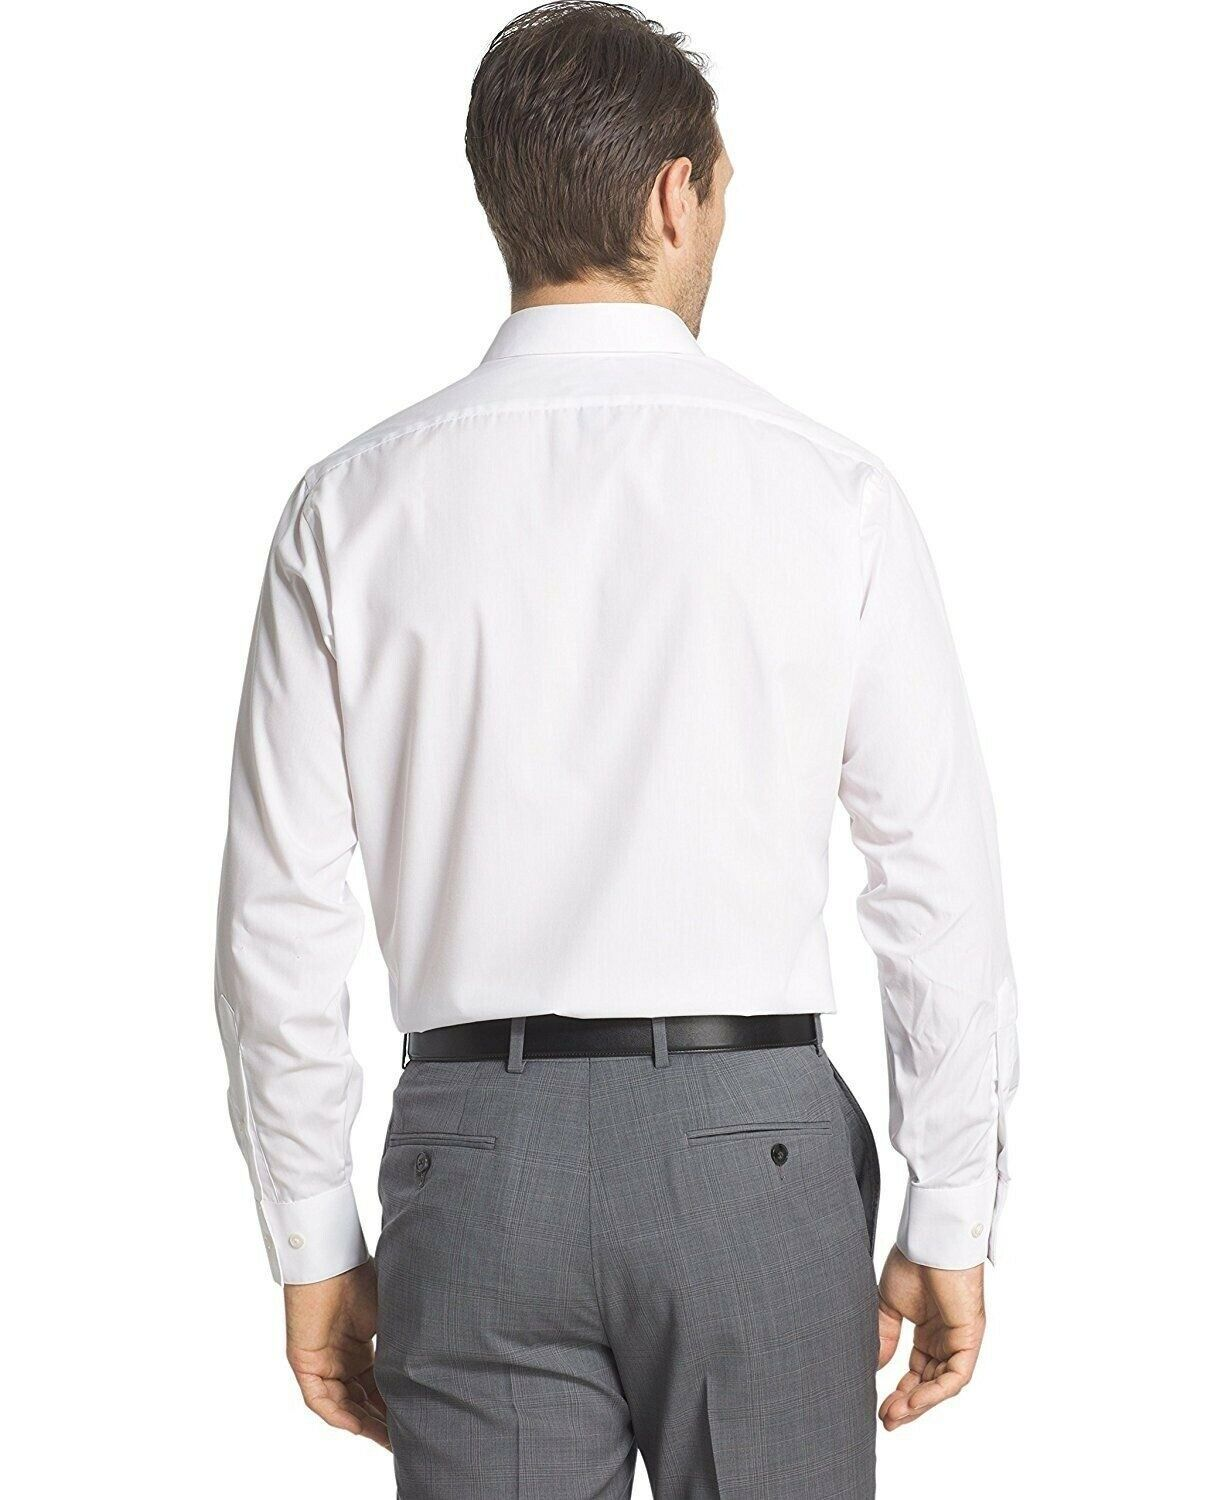 BERLIONI-ITALY-MEN-039-S-PRIME-FRENCH-CONVERTIBLE-CUFF-SOLID-DRESS-SHIRT-WHITE thumbnail 59